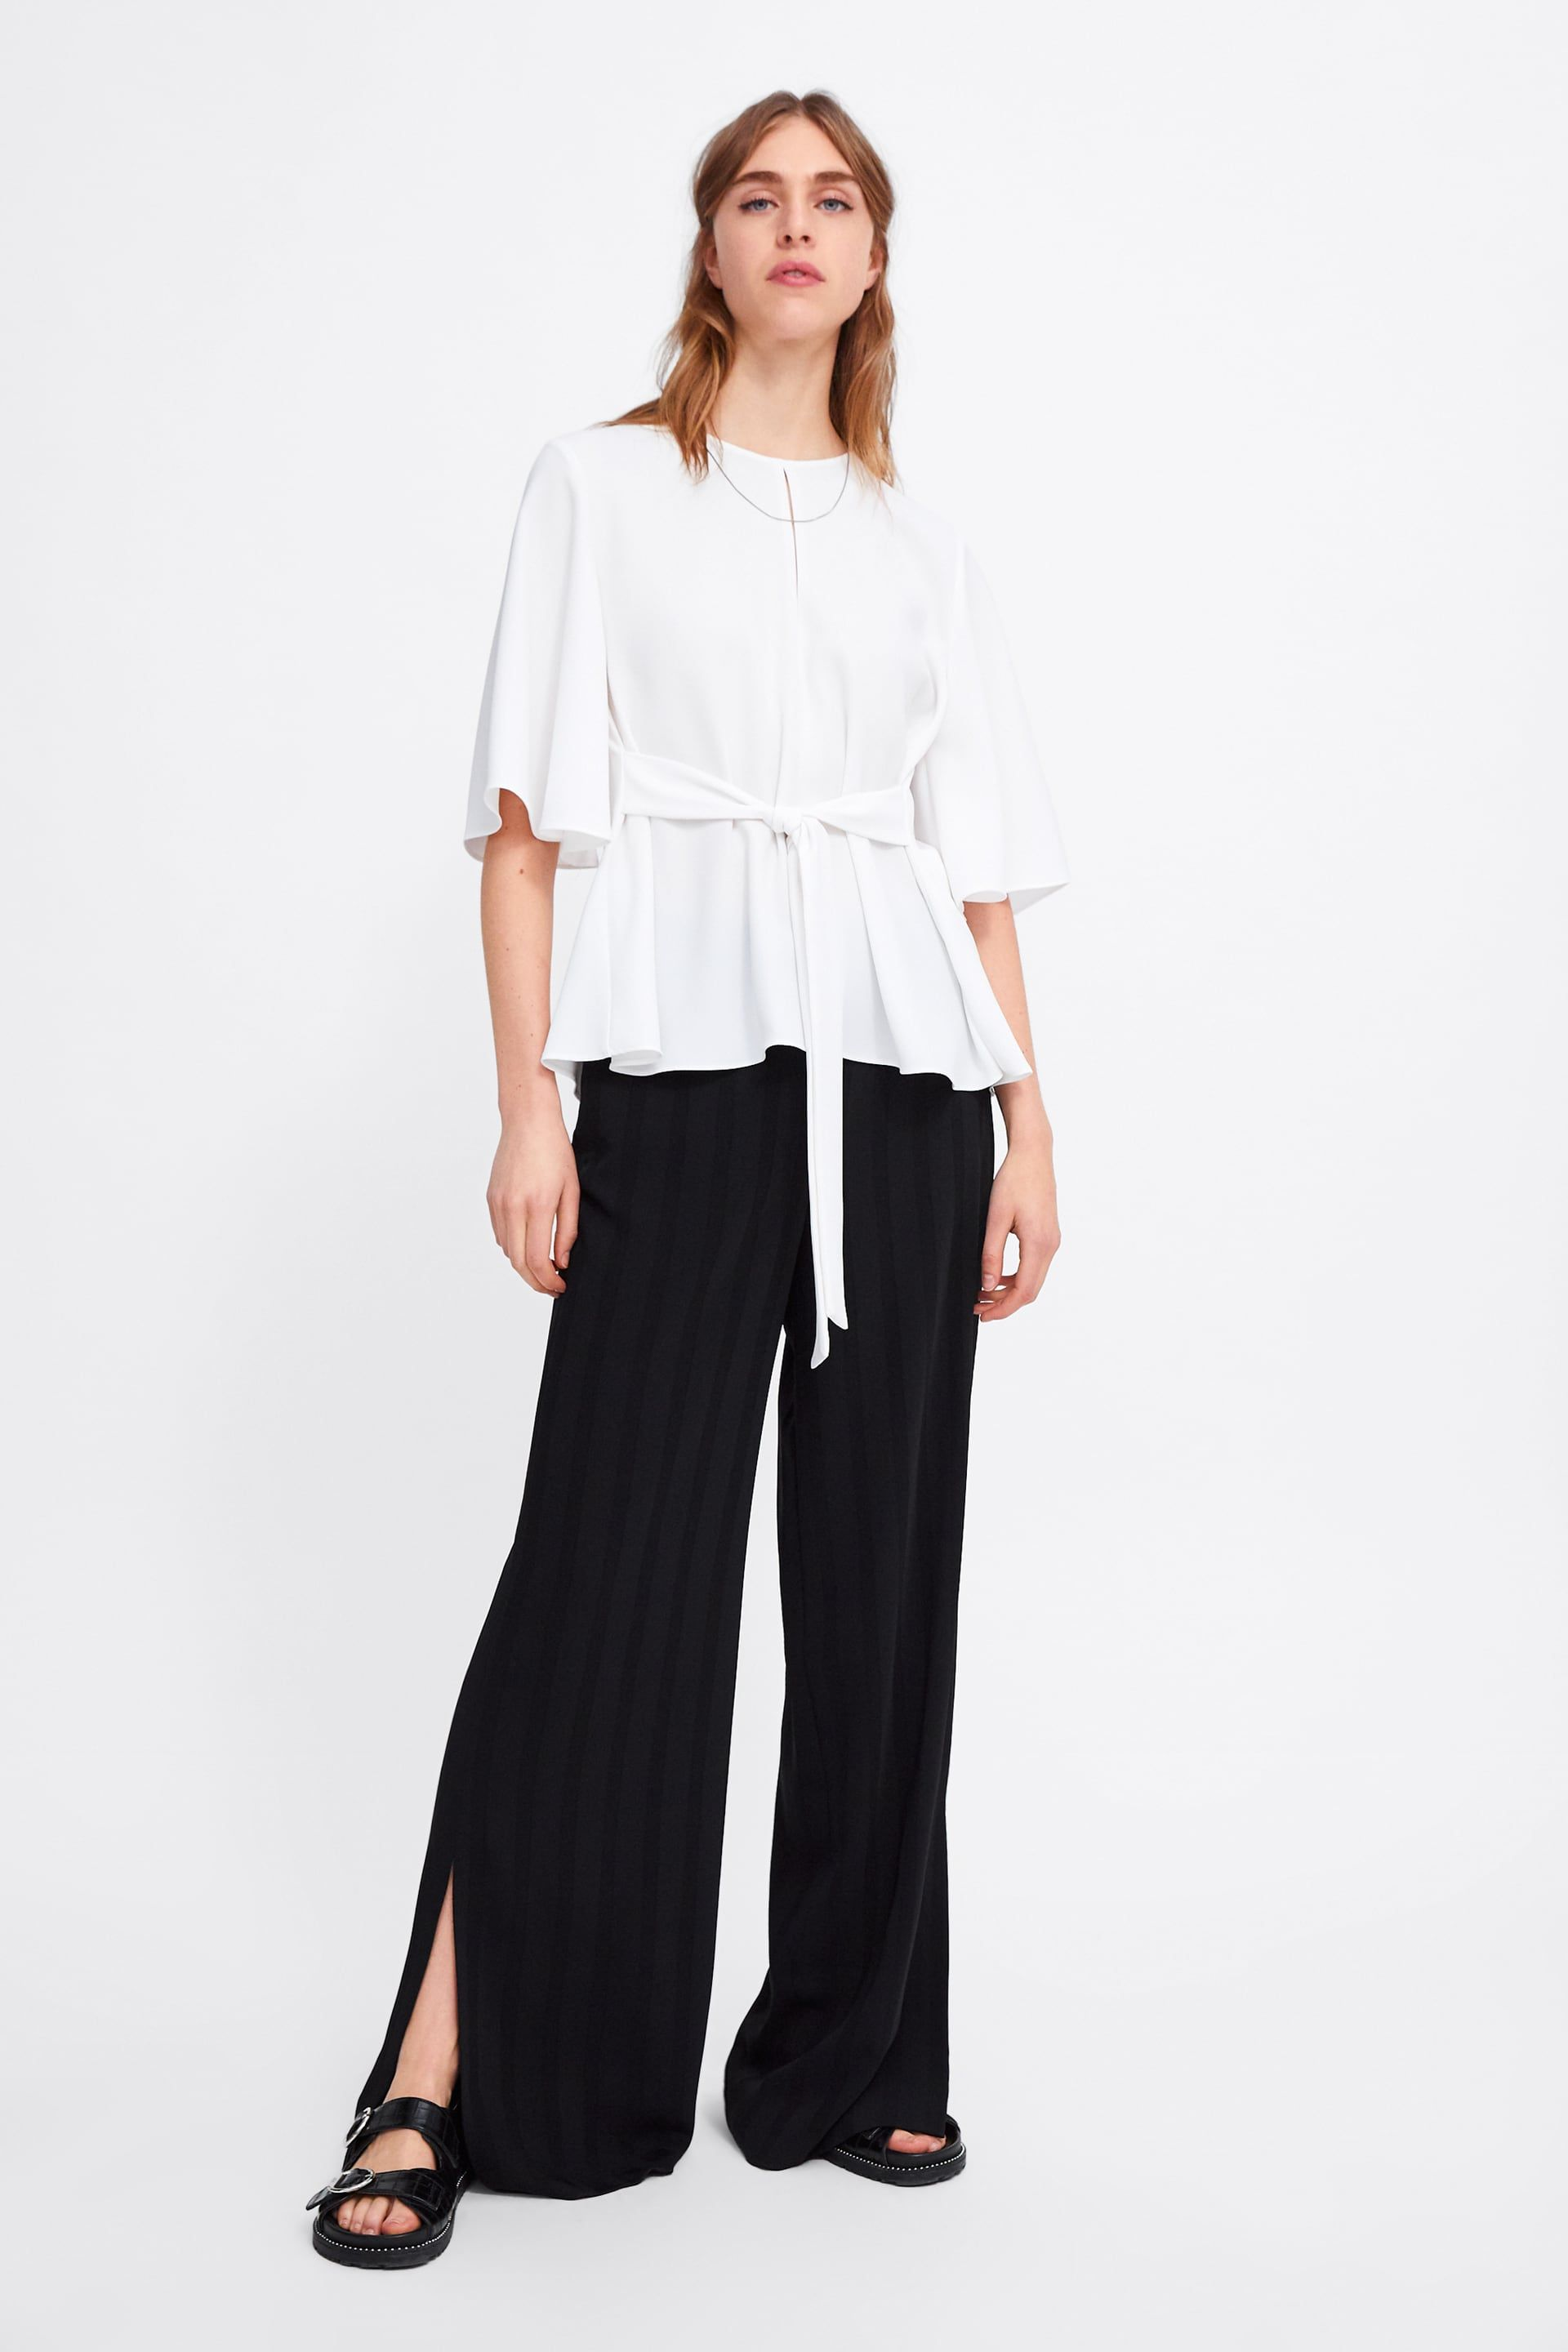 Flowing top with tie detail | Flowy tops, Lace dress with